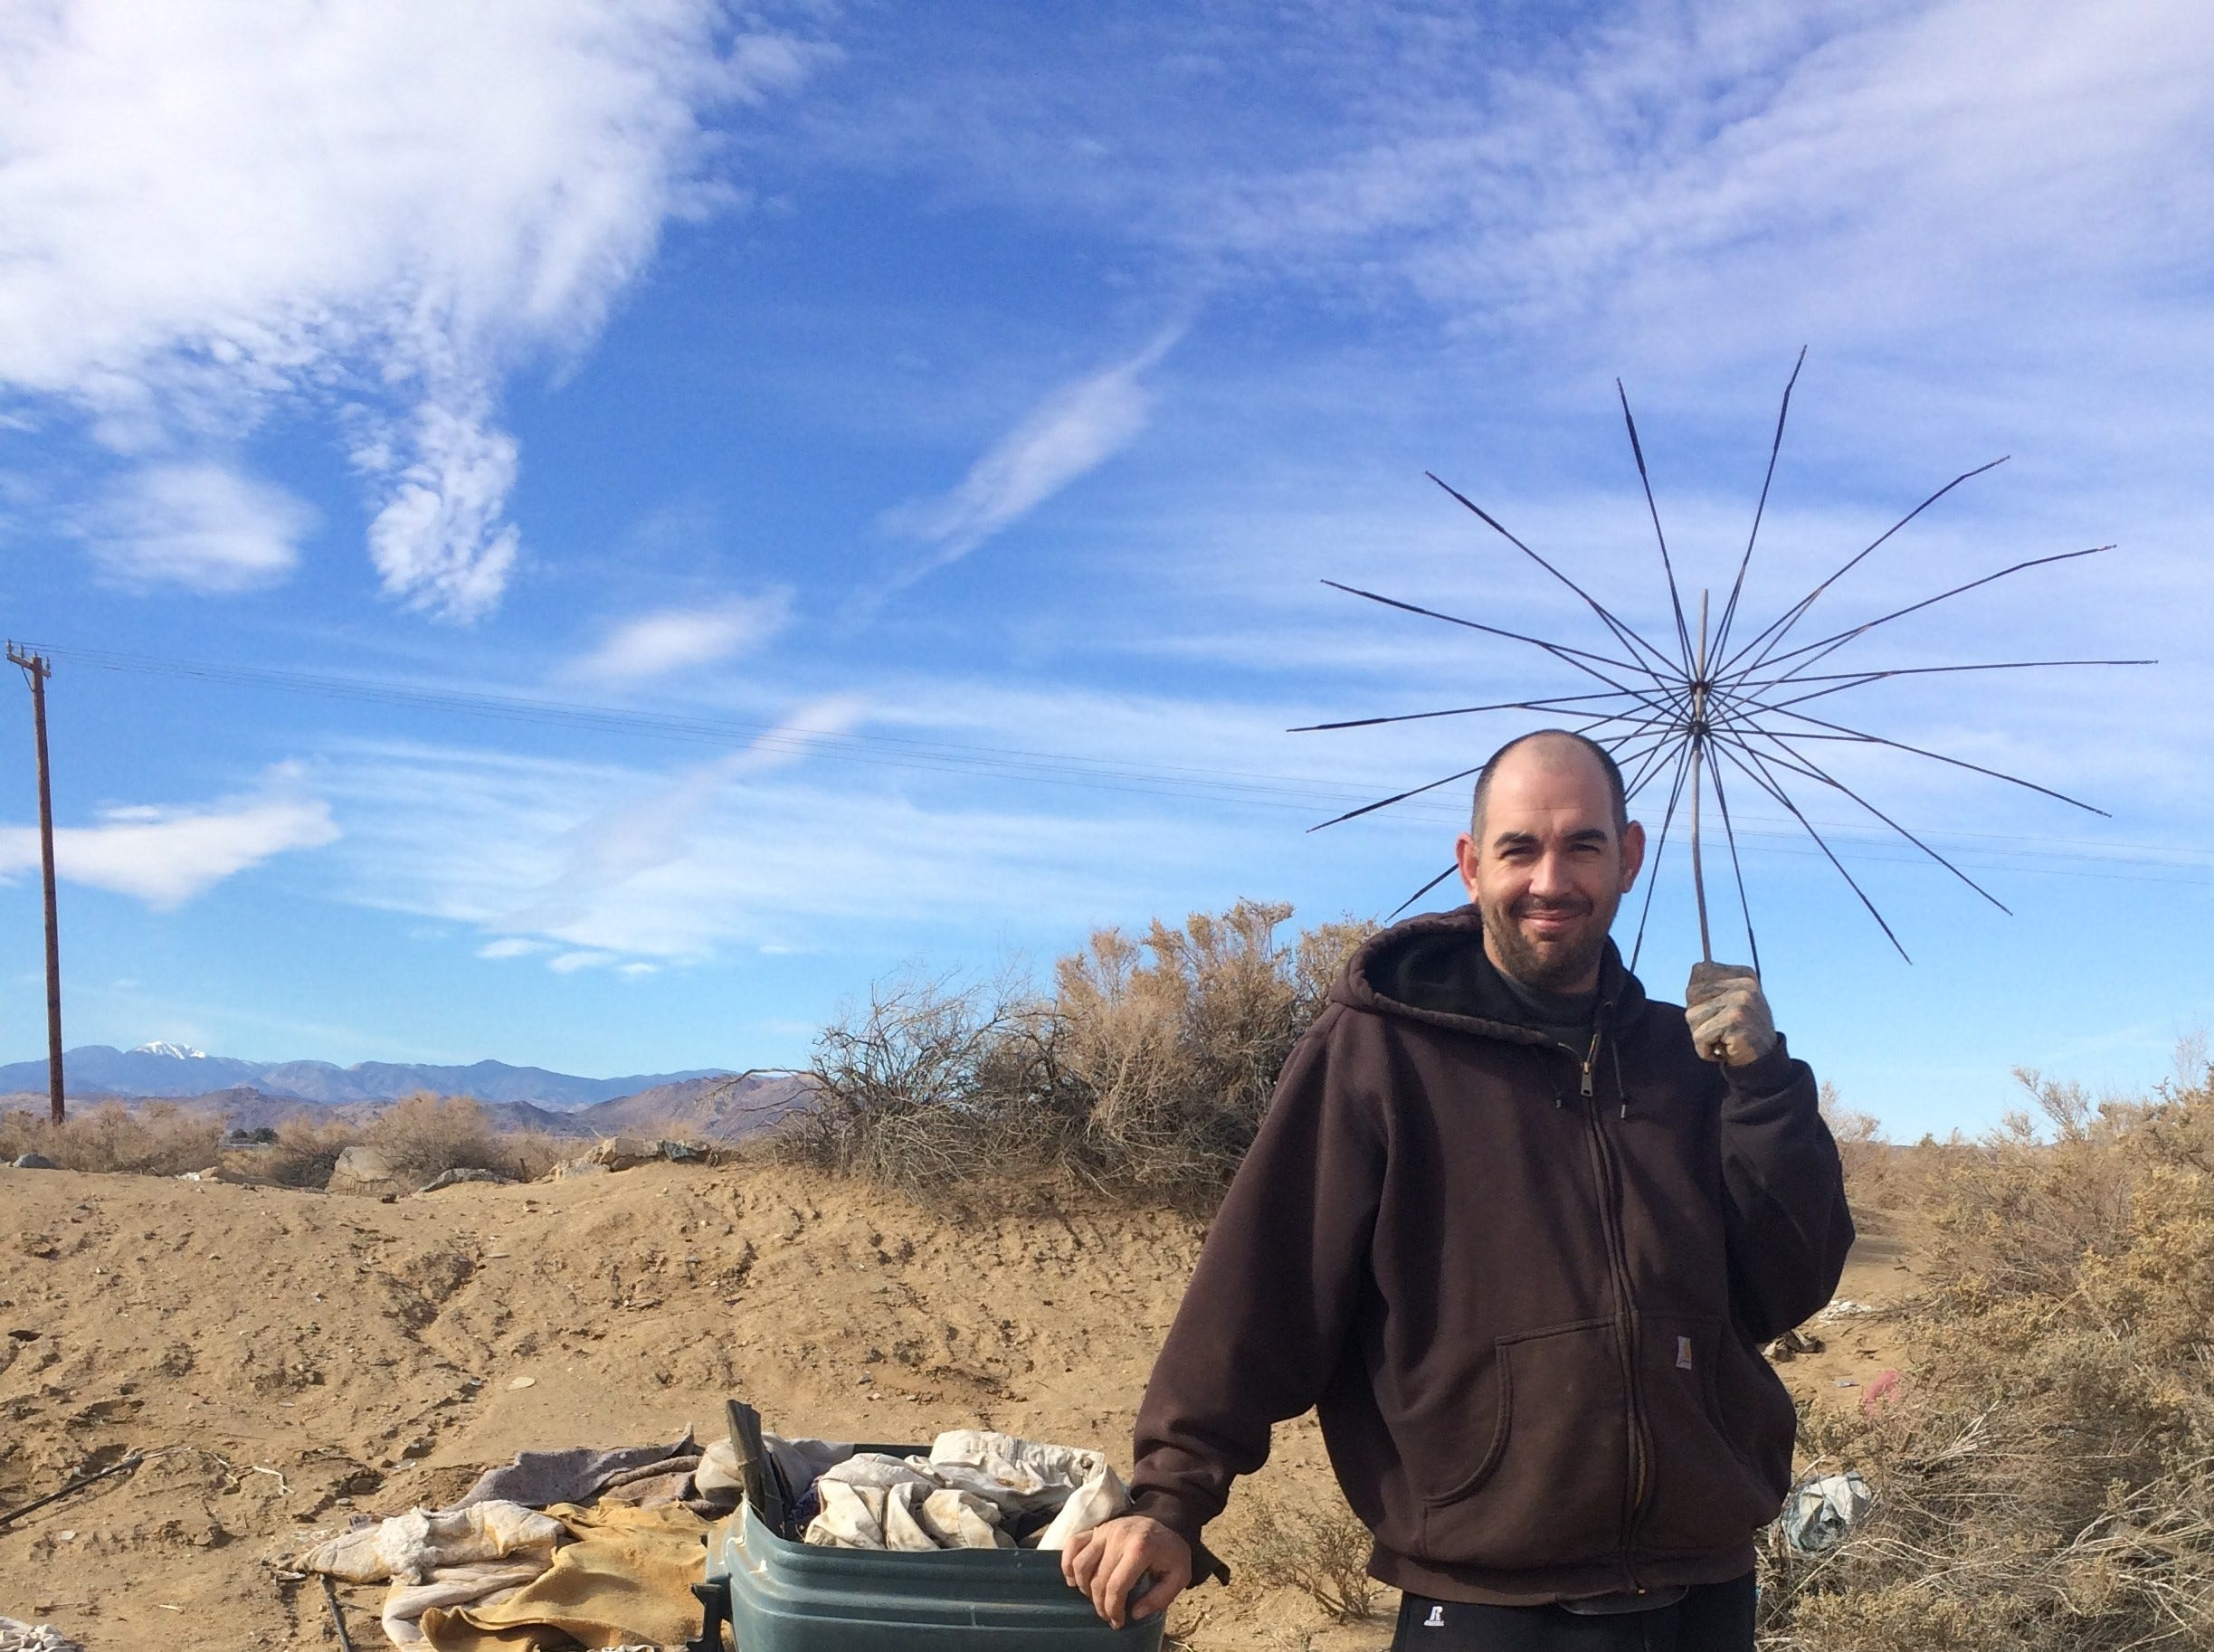 Colin Sauter, of Joshua Tree, poses with an umbrella he found while cleaning up trash in the open desert.